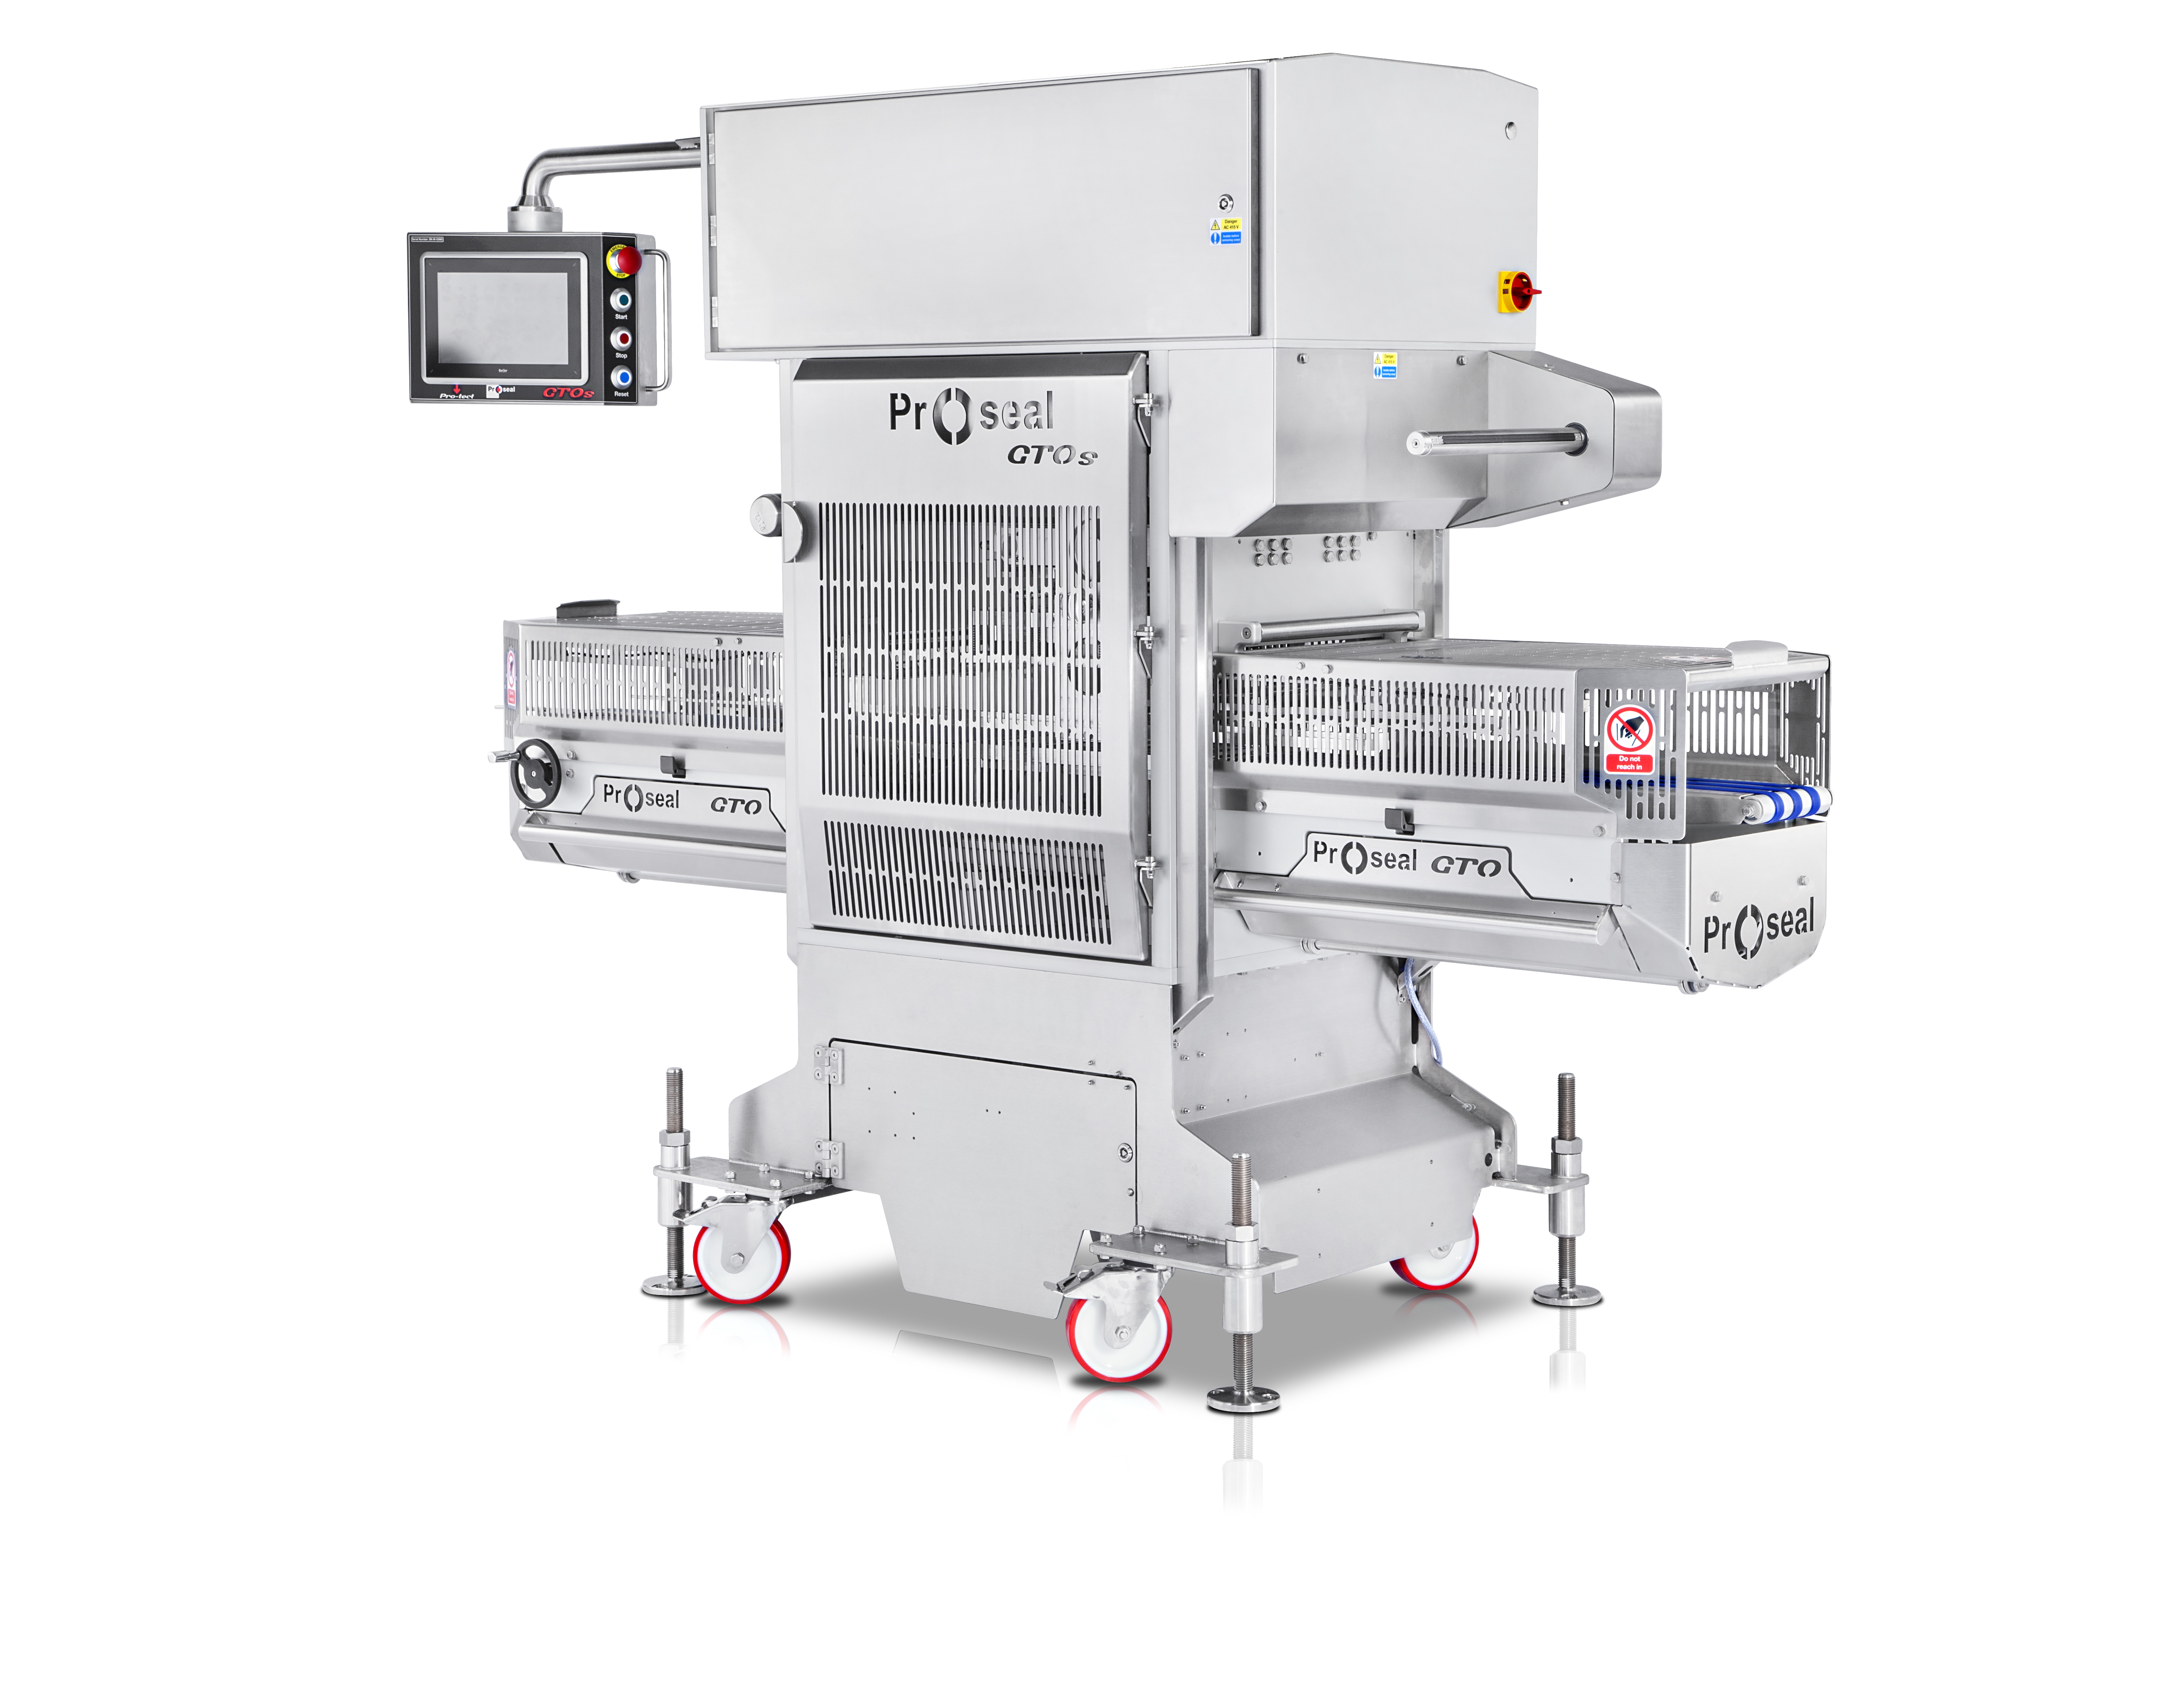 Mitsubishi Electric demonstrates easy integration for new packaging machinery automation solutions